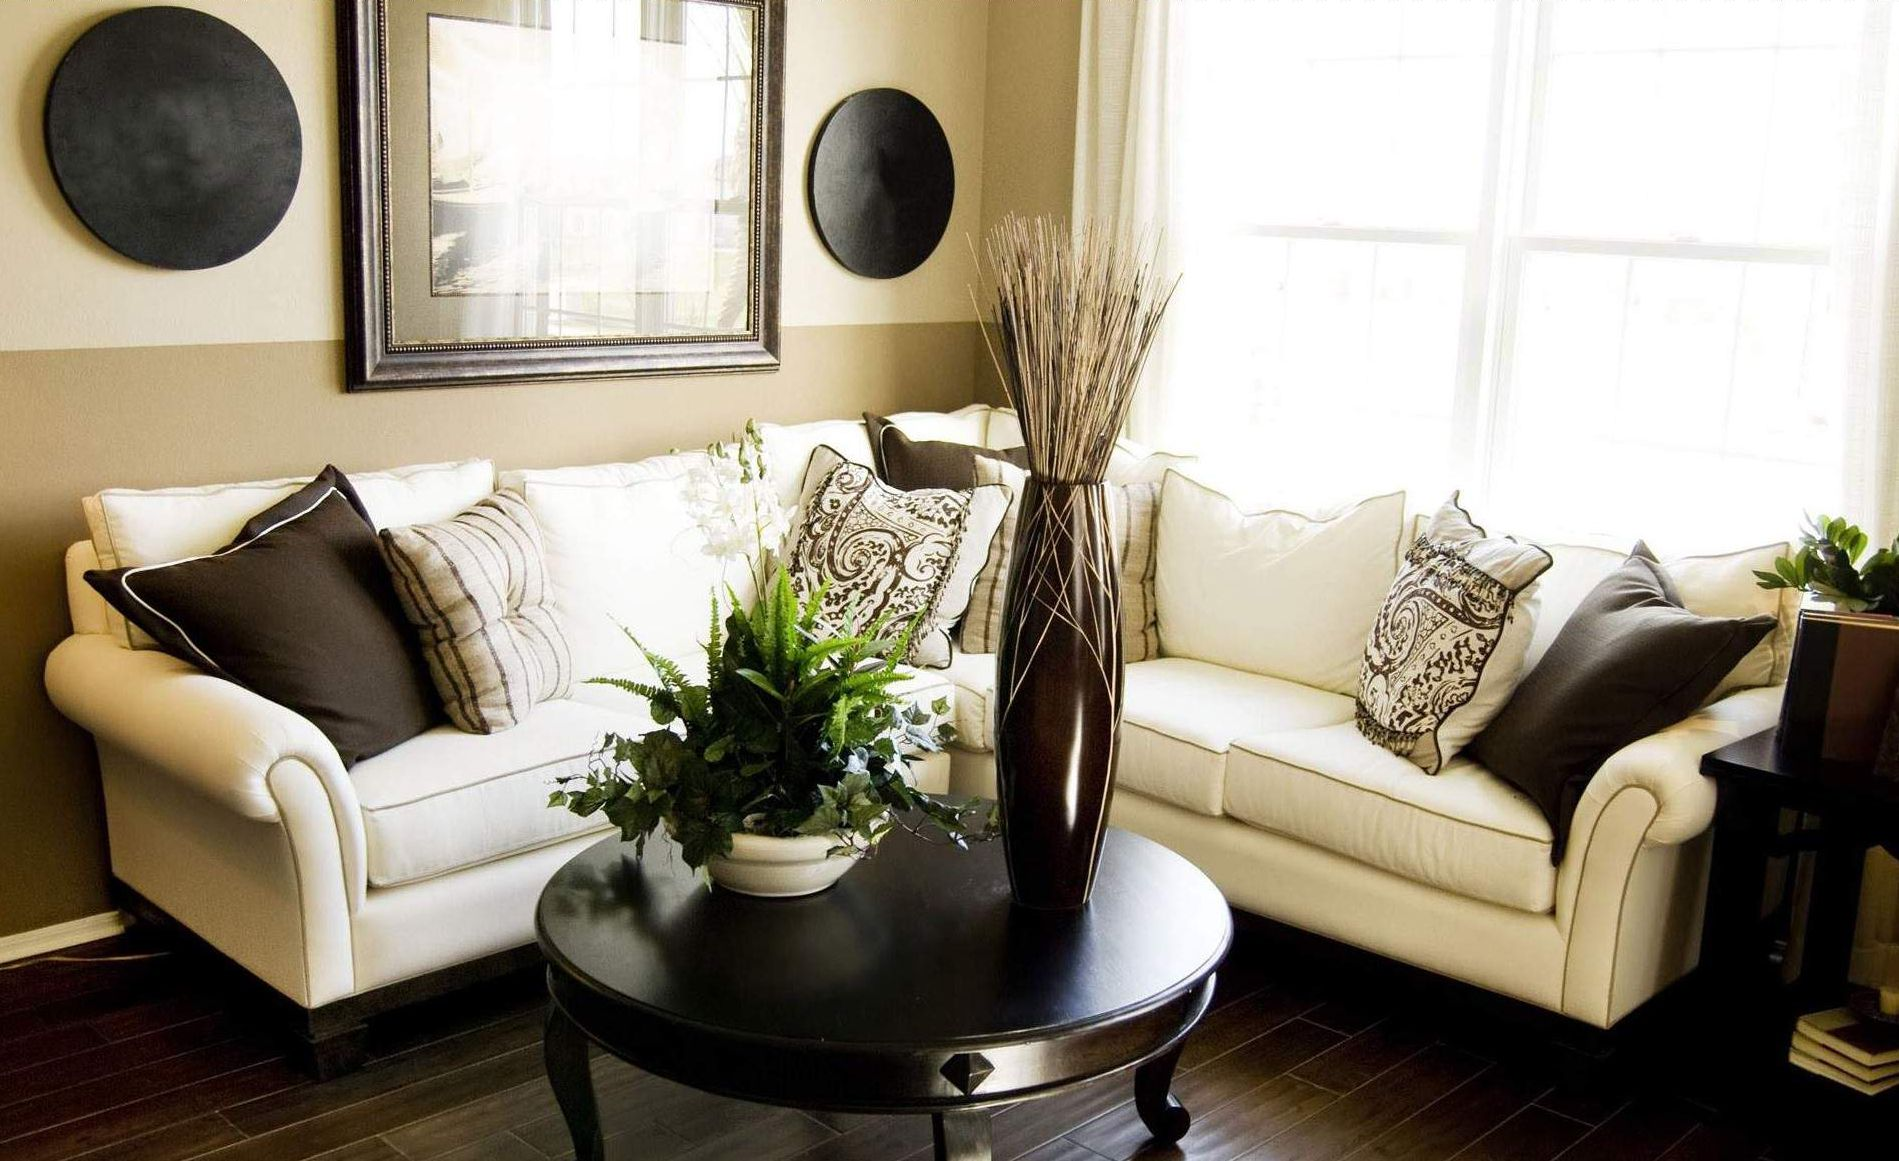 4 inspiring small living room ideas - midcityeast